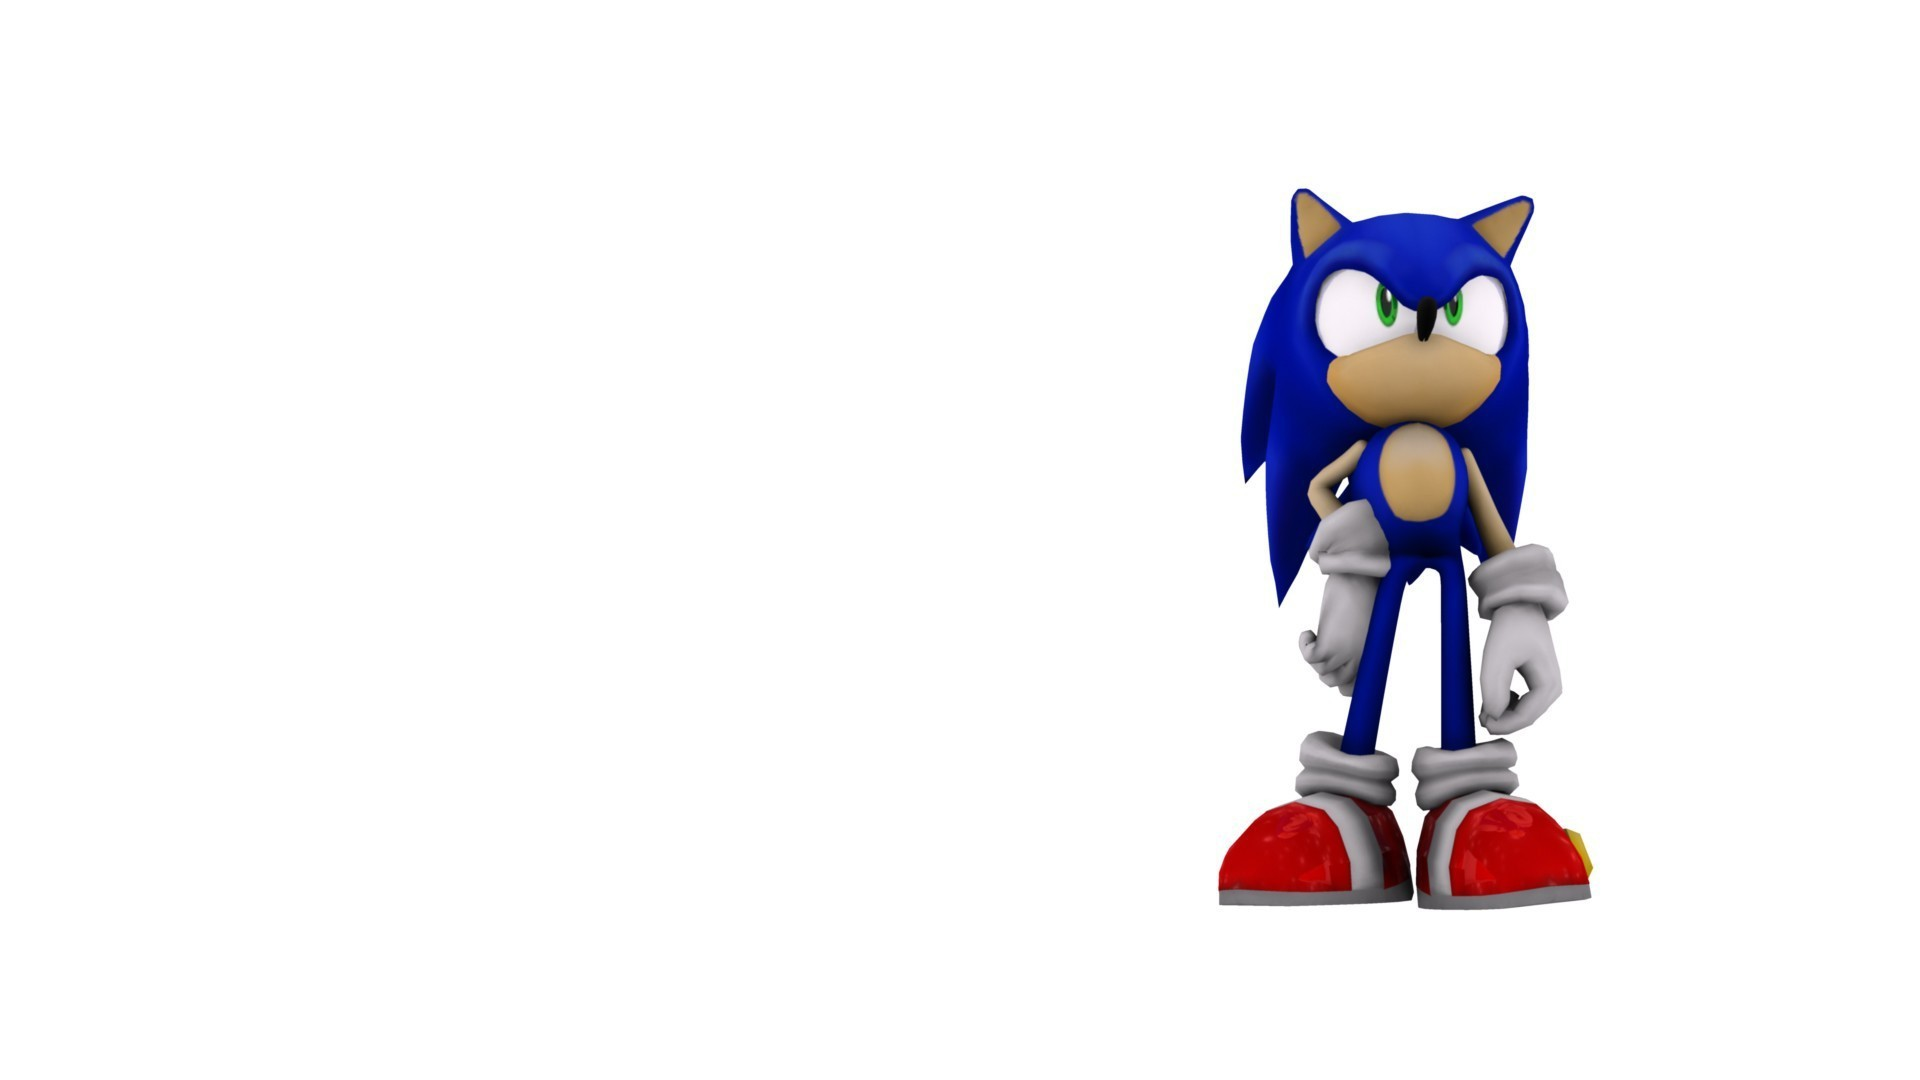 3d-sonic-the-hedgehog-twilight-wolves-1920x1080-sonic-hedgehog-twilight-wolves-via-www-allwal-wallpaper-wp3601272